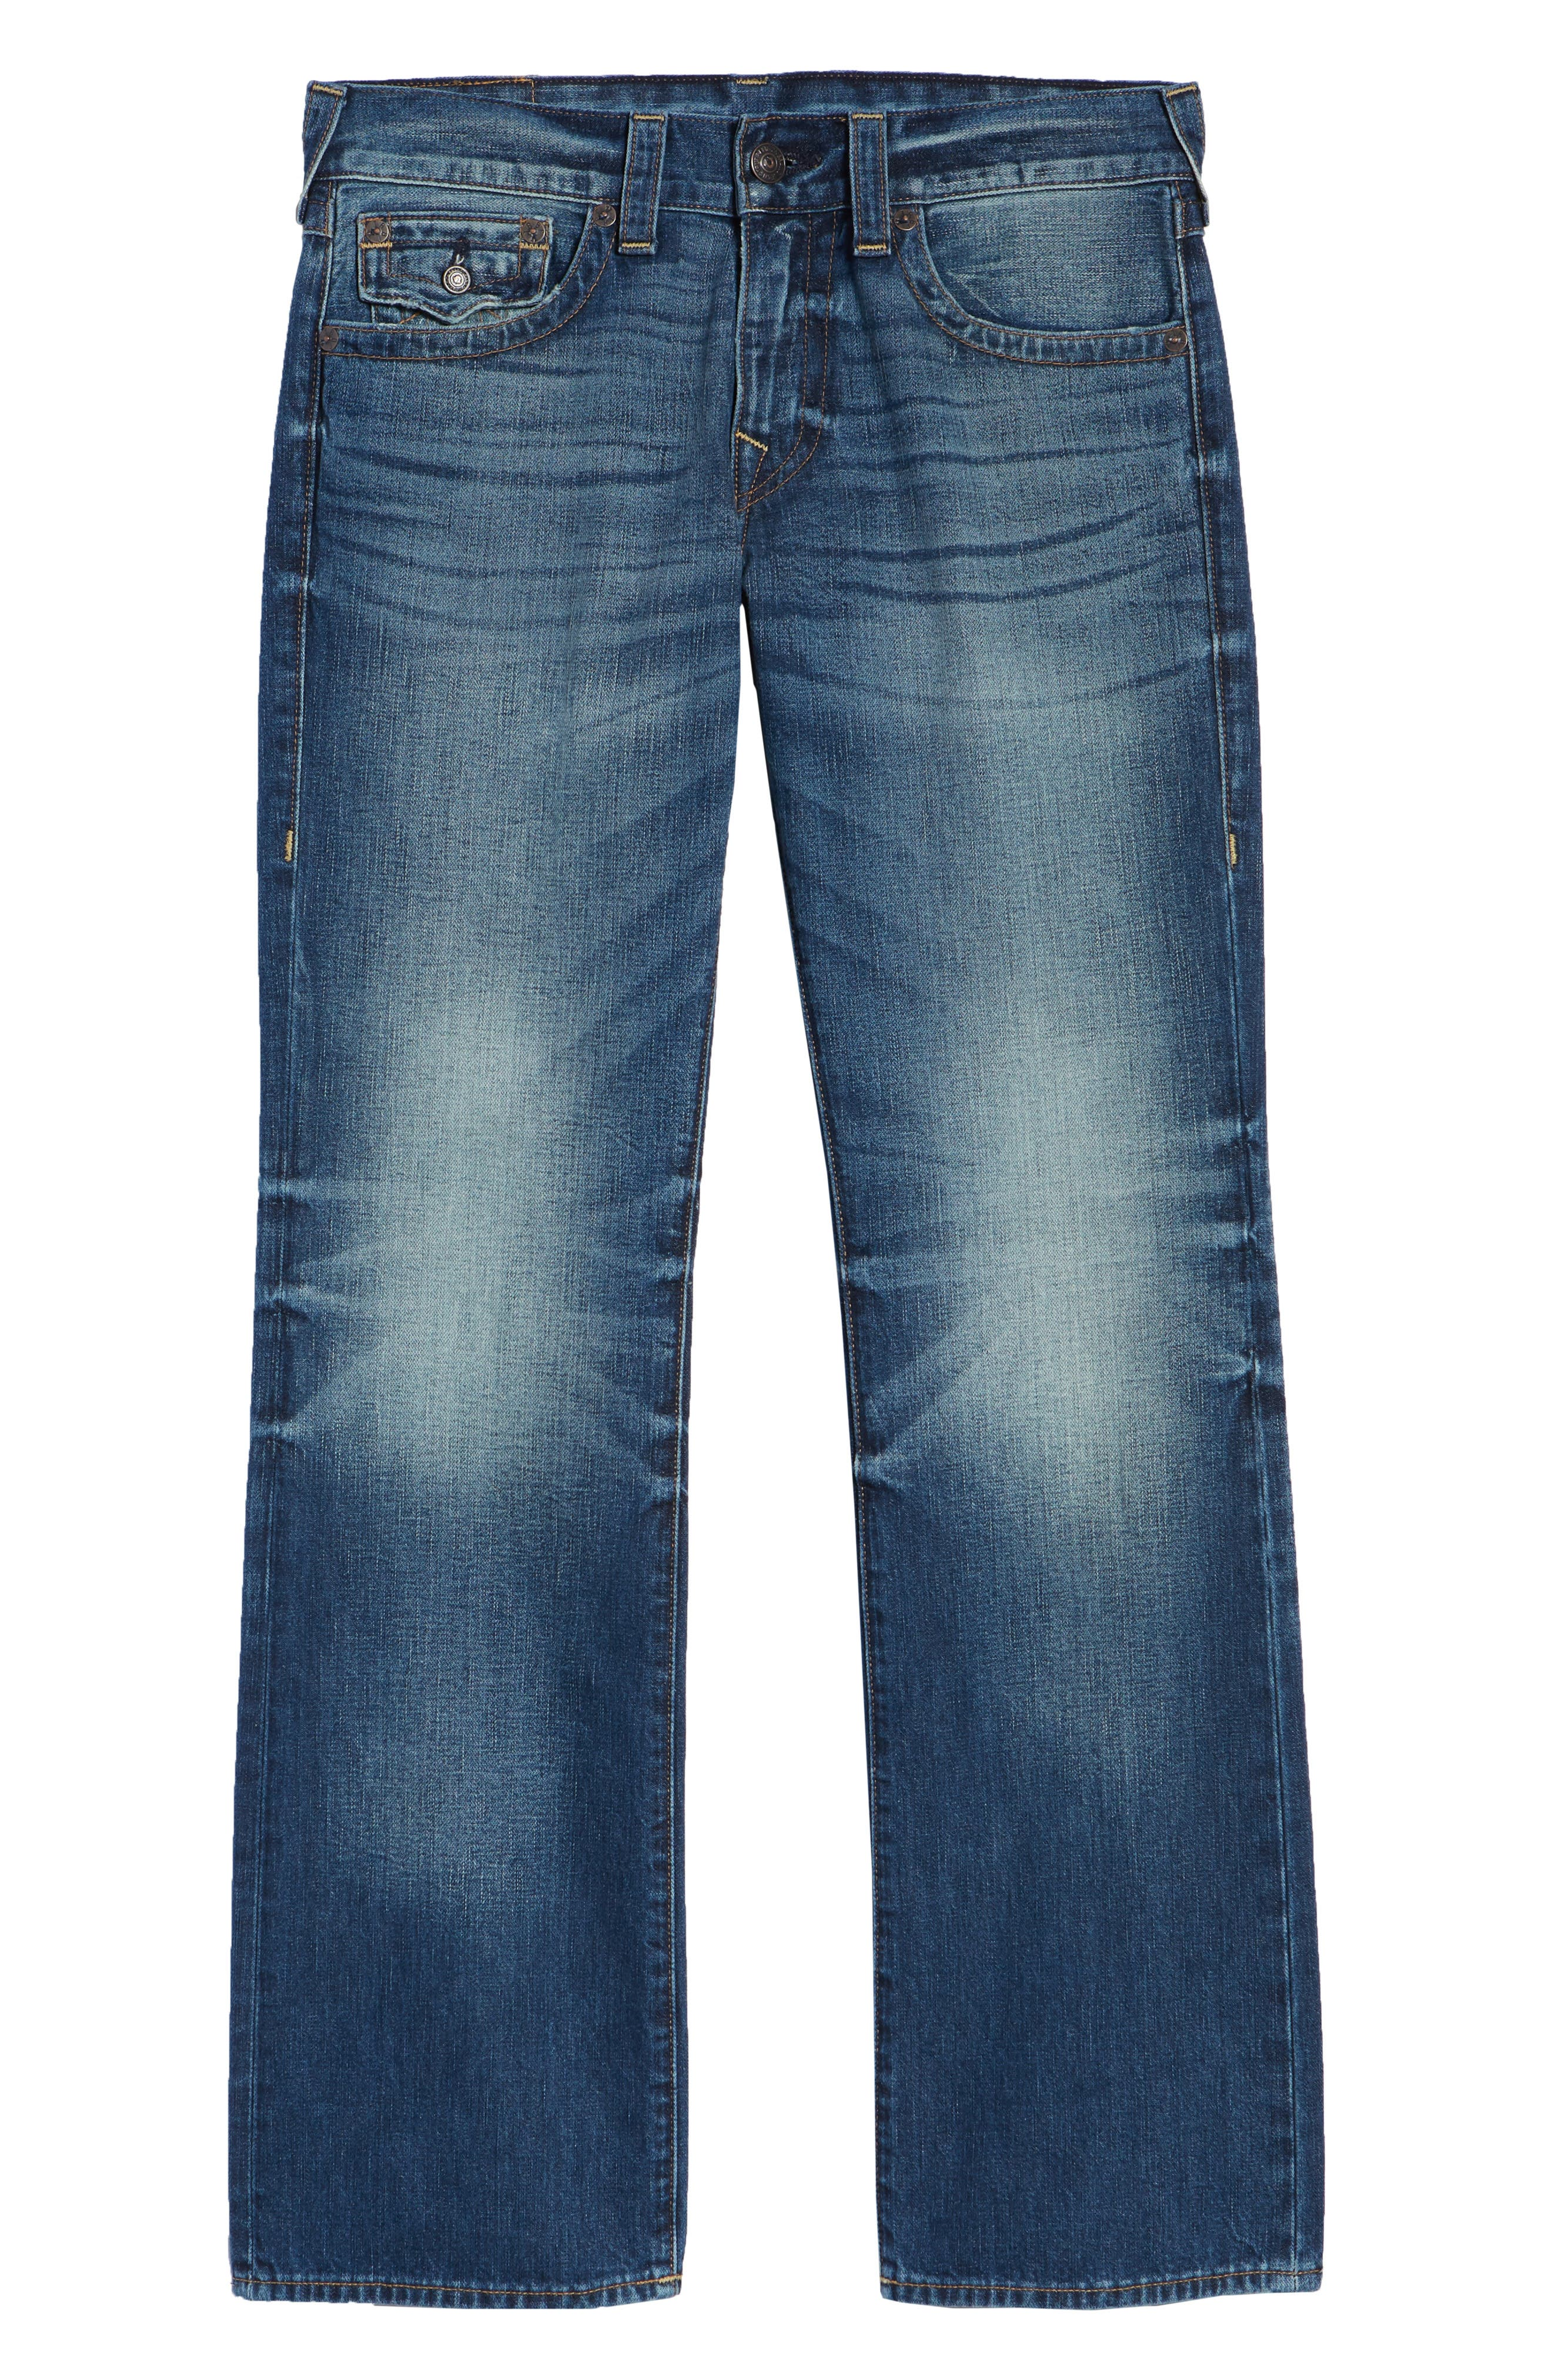 Billy Bootcut Jeans,                             Alternate thumbnail 6, color,                             BLUE REBEL